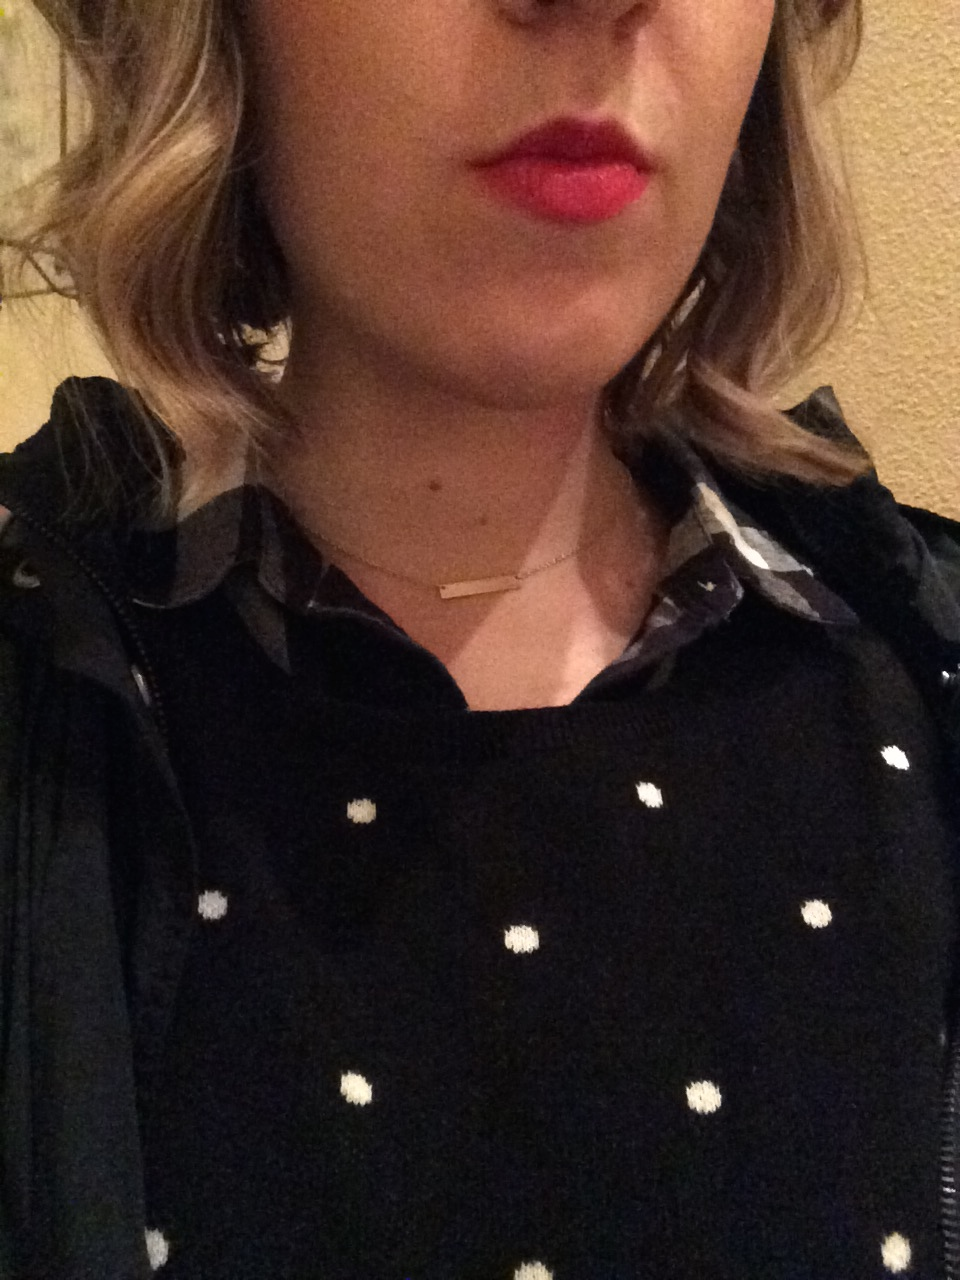 Polka dots and pink lips, shorter hair, ready for the next year.